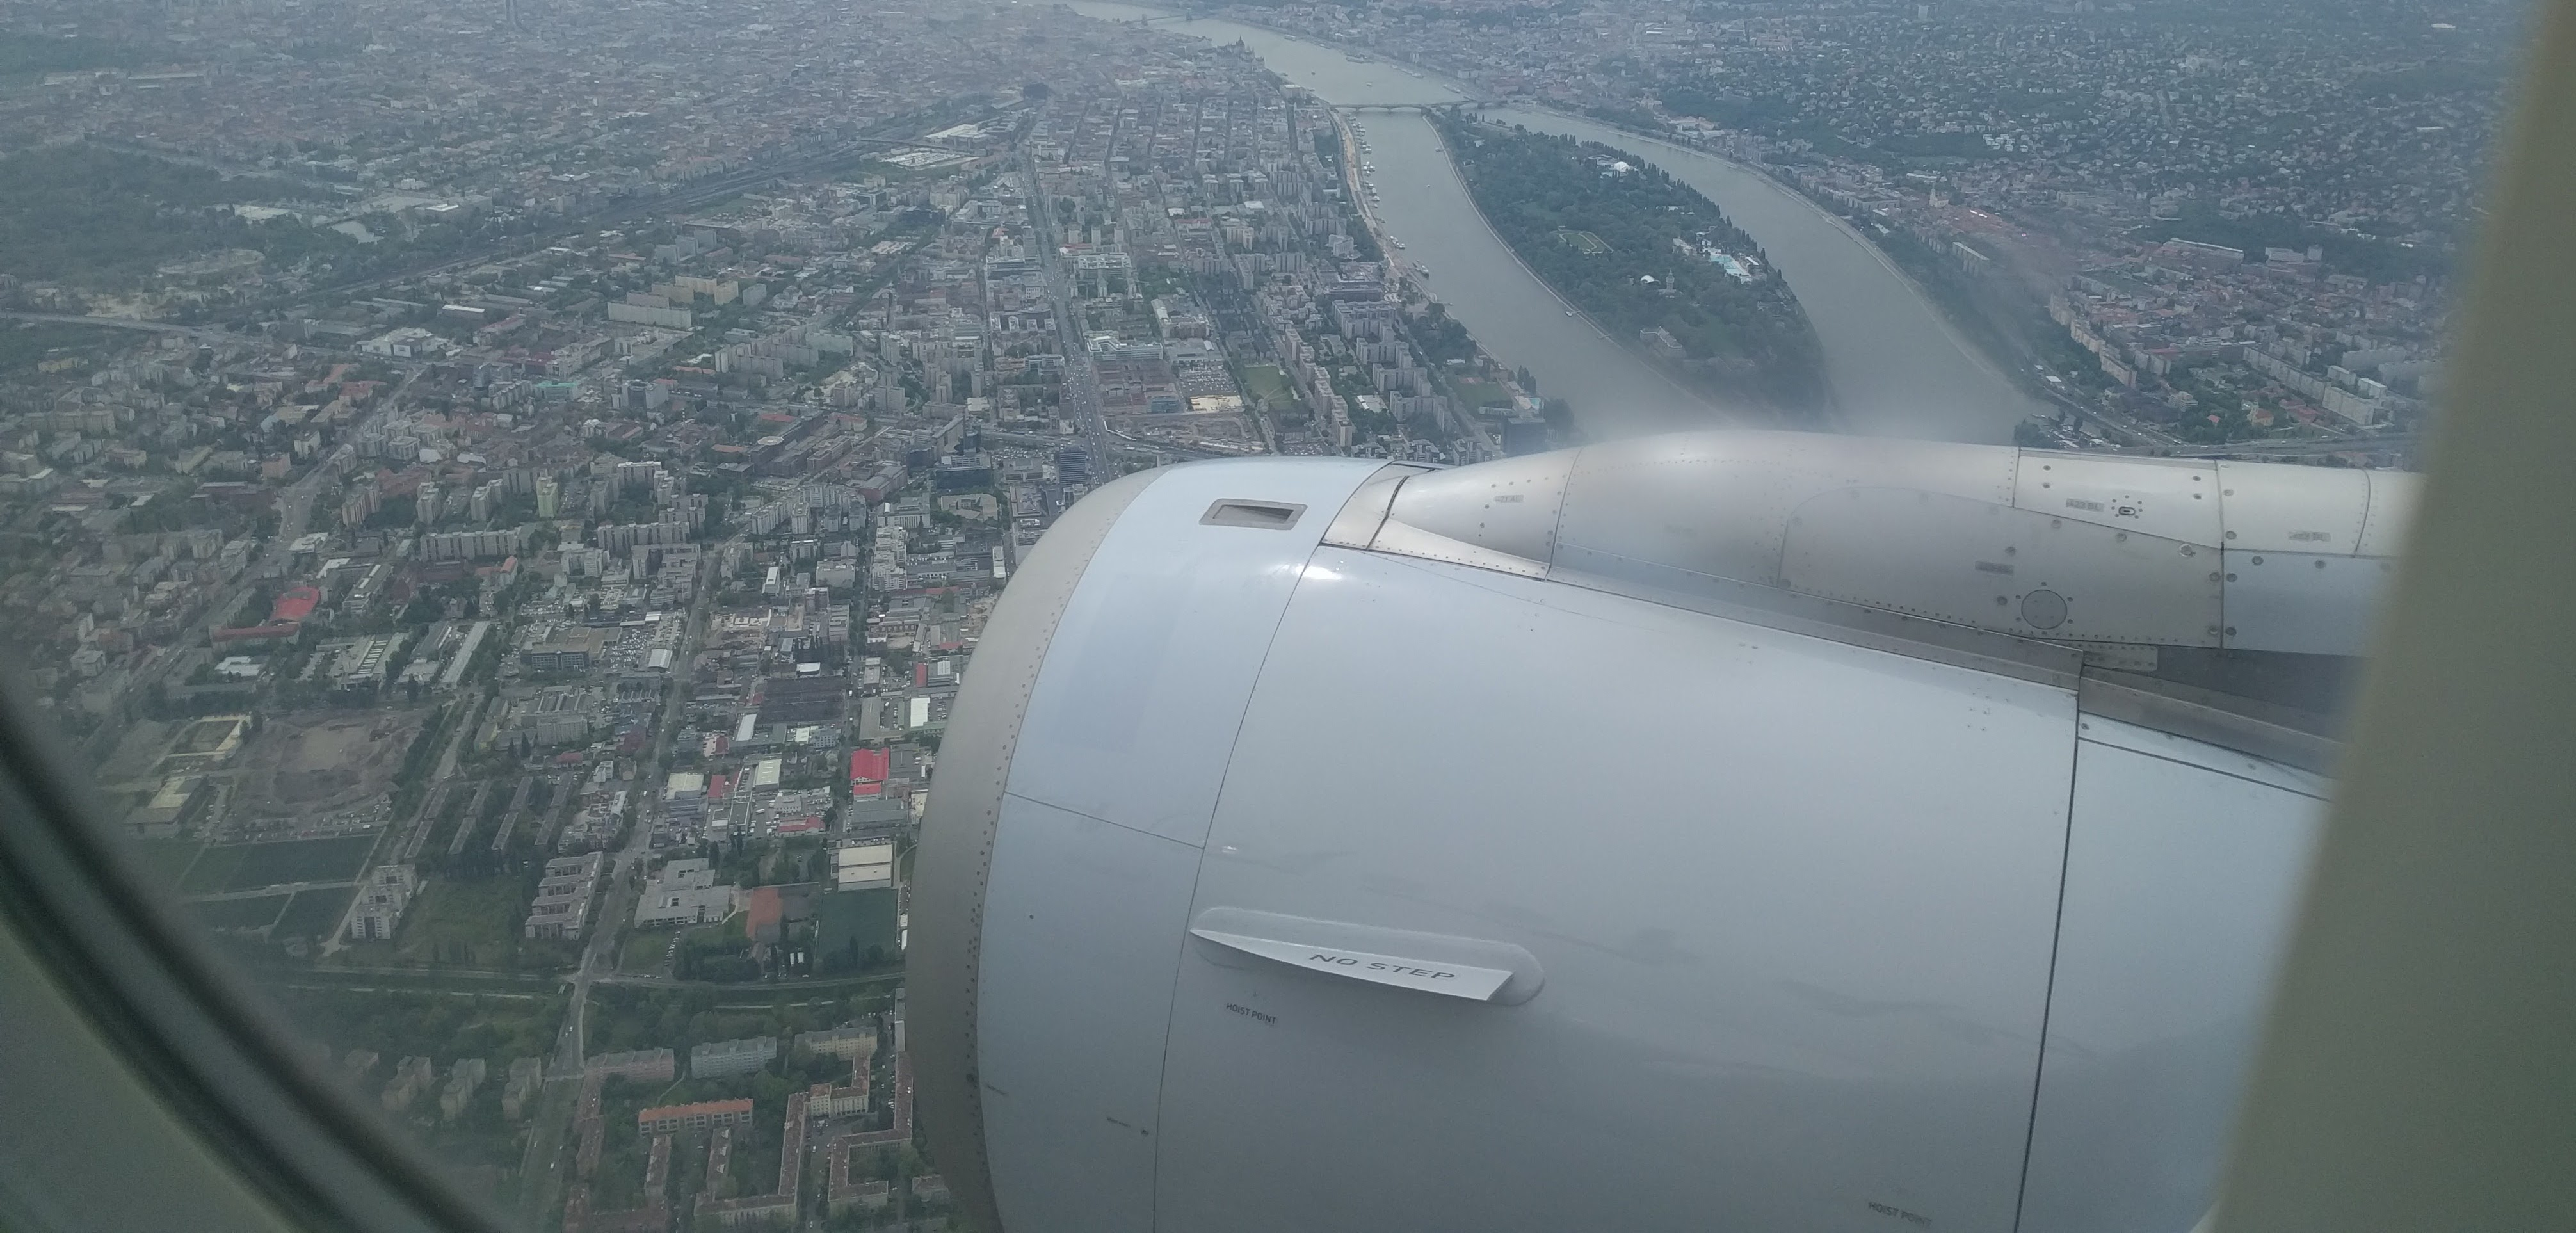 Landing in Budapest for the second time